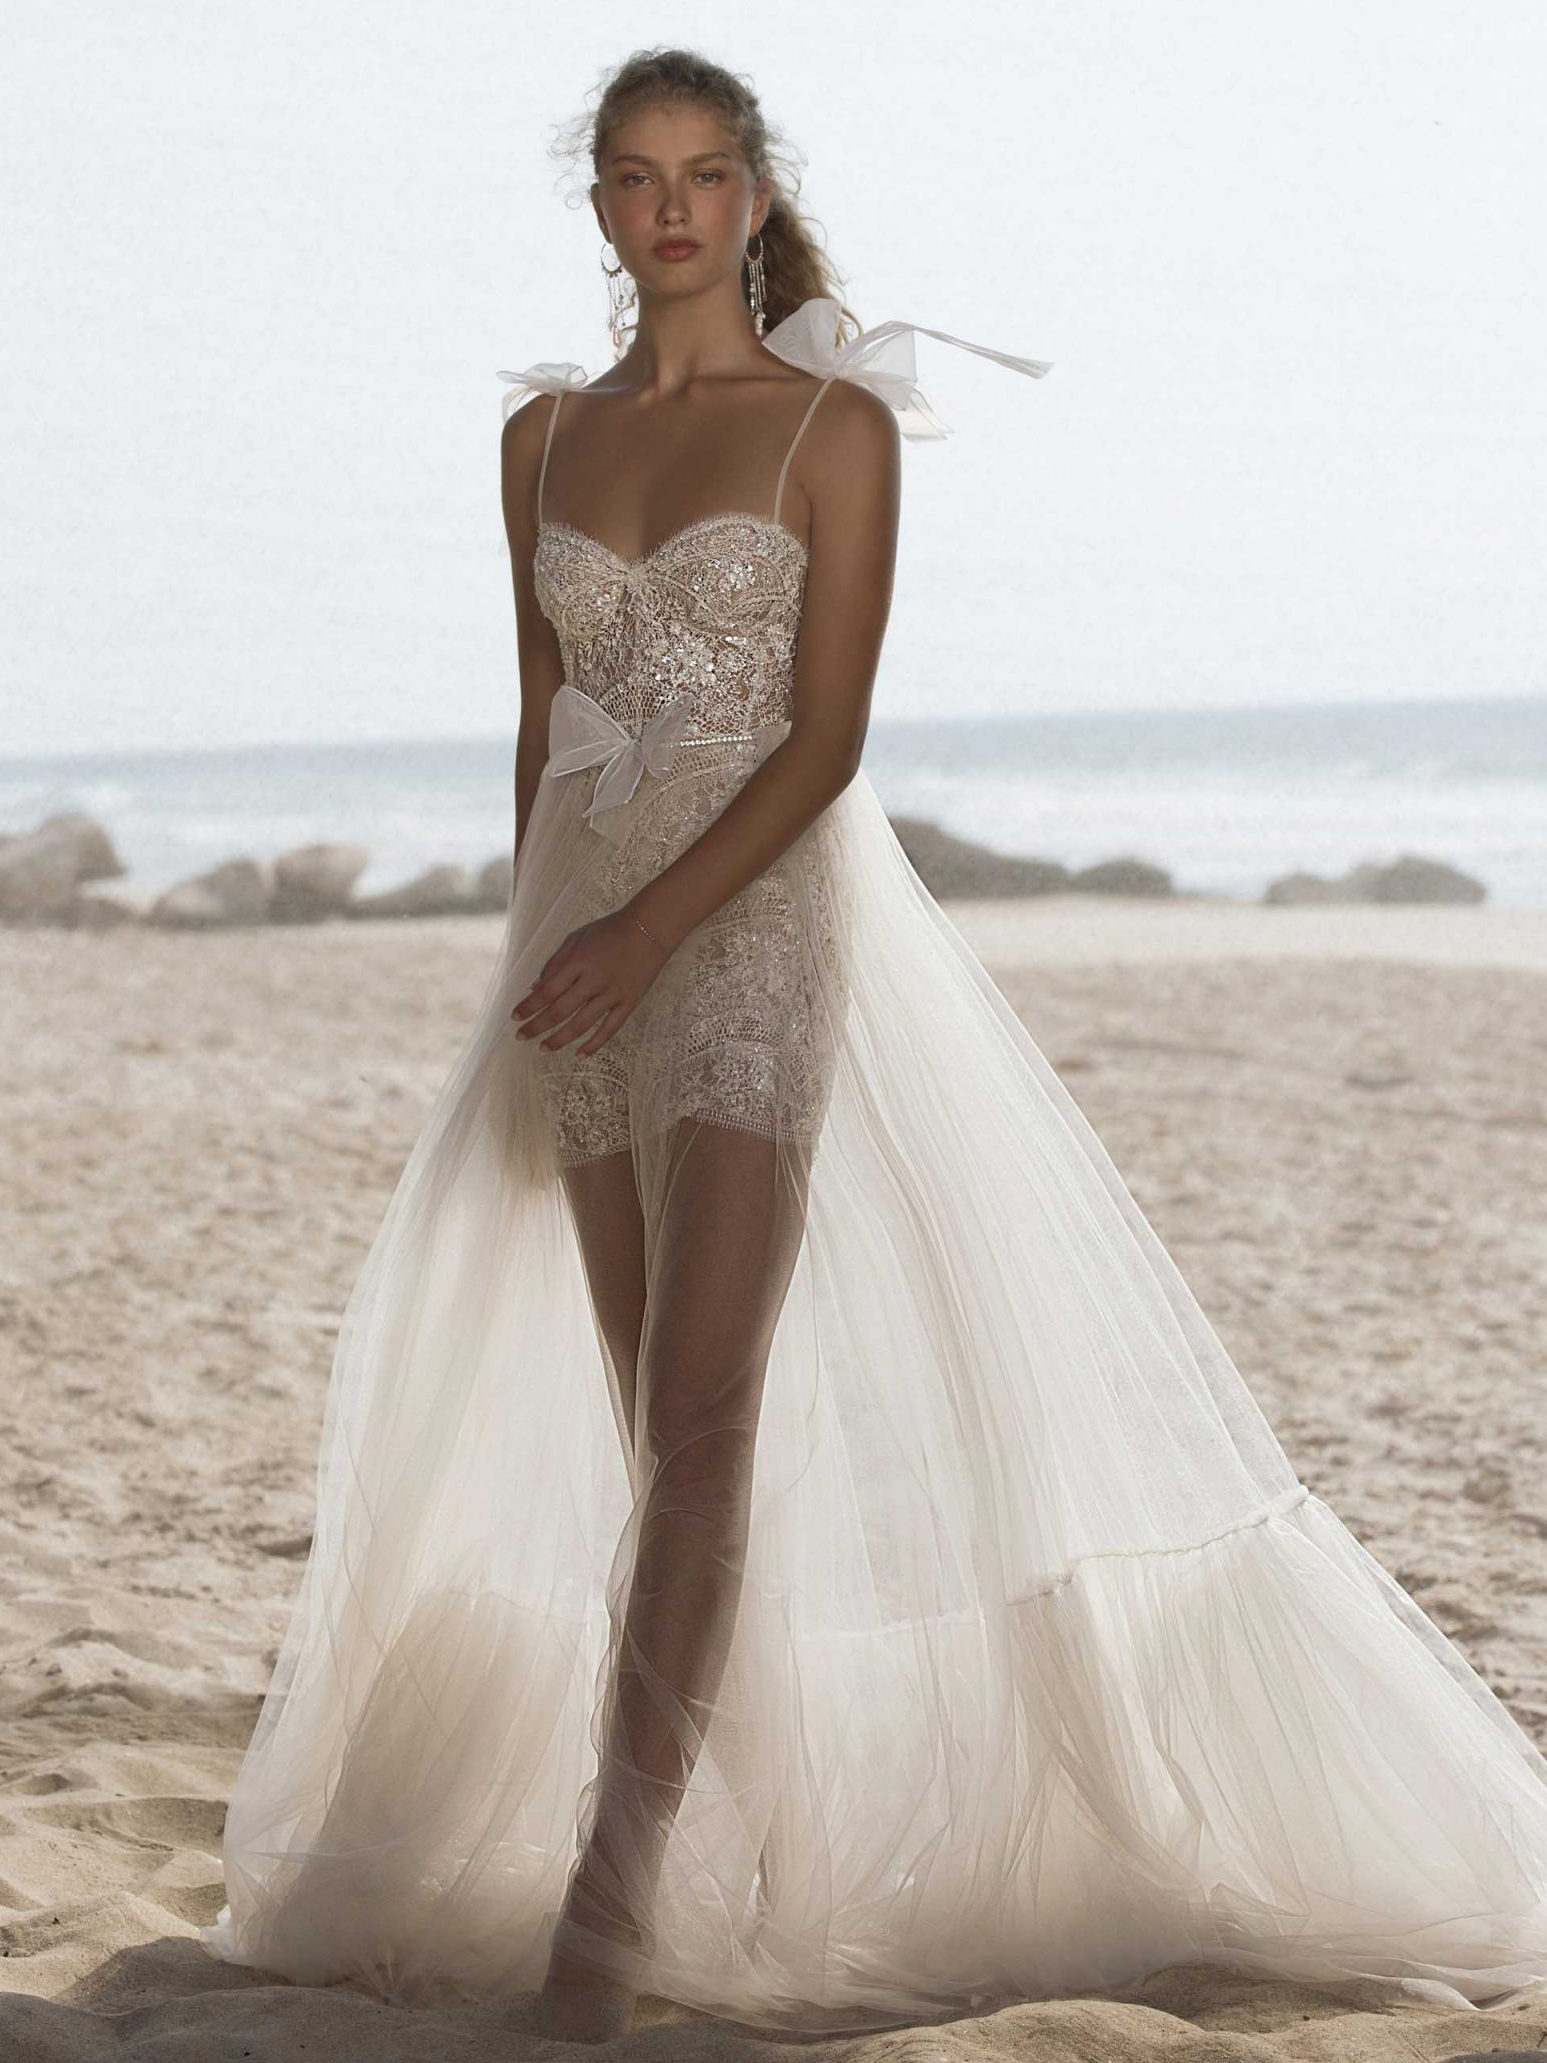 21-HAYDEN Bridal Dress Inspirated By Berta Muse 2021 Vista Mare Collection